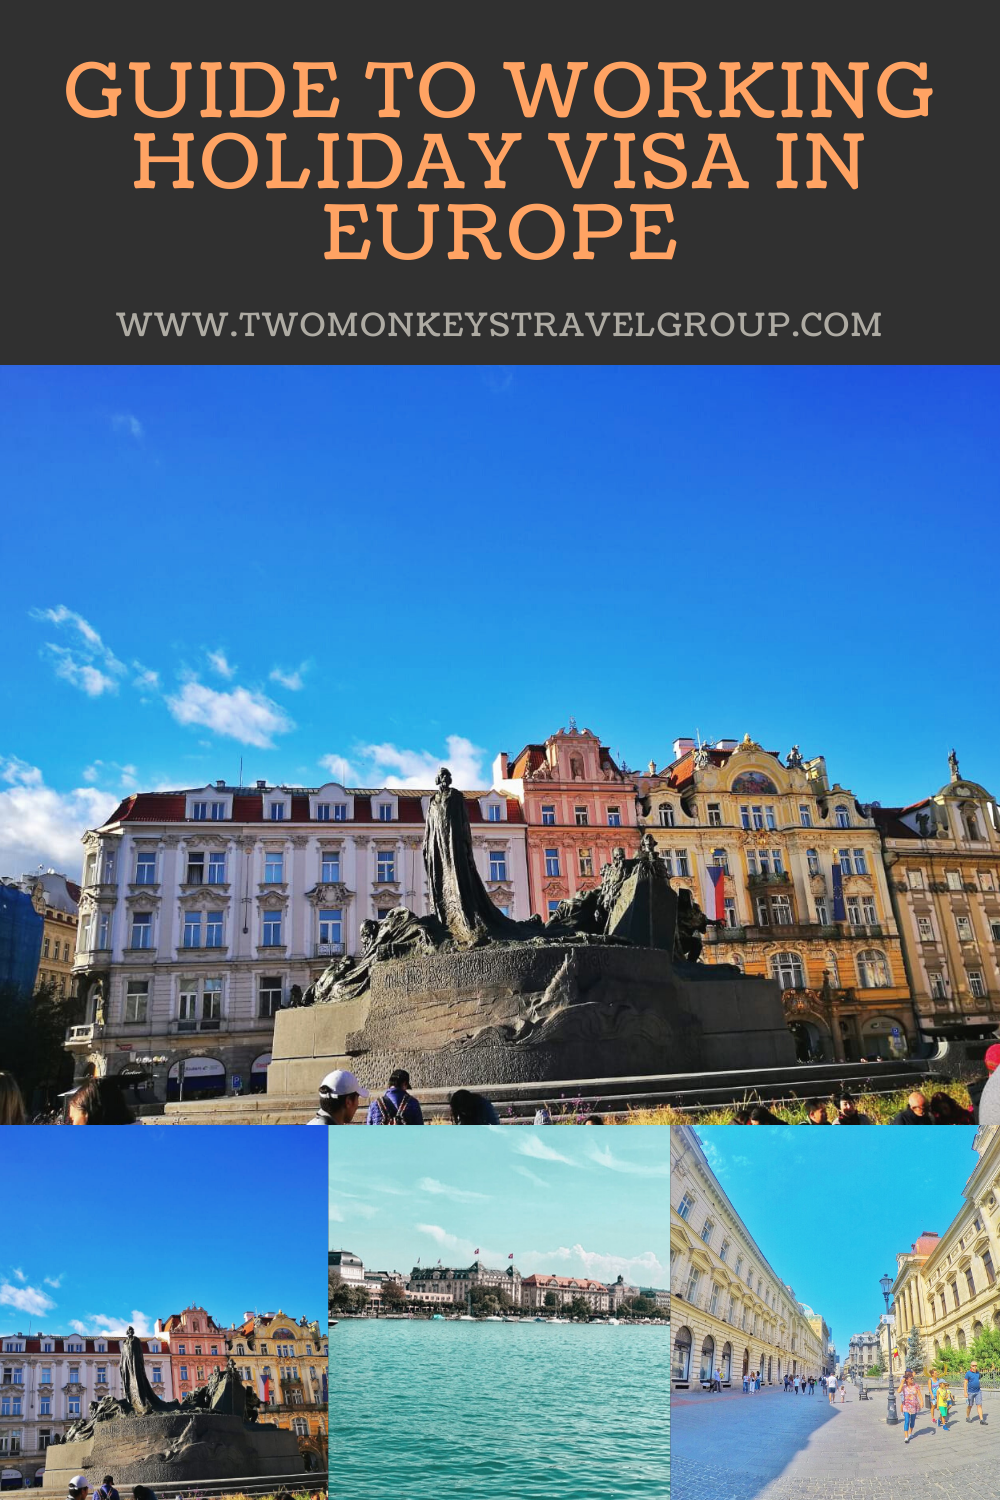 Guide to Working Holiday Visa in Europe How To Stay in Europe for 1 to 2 years!